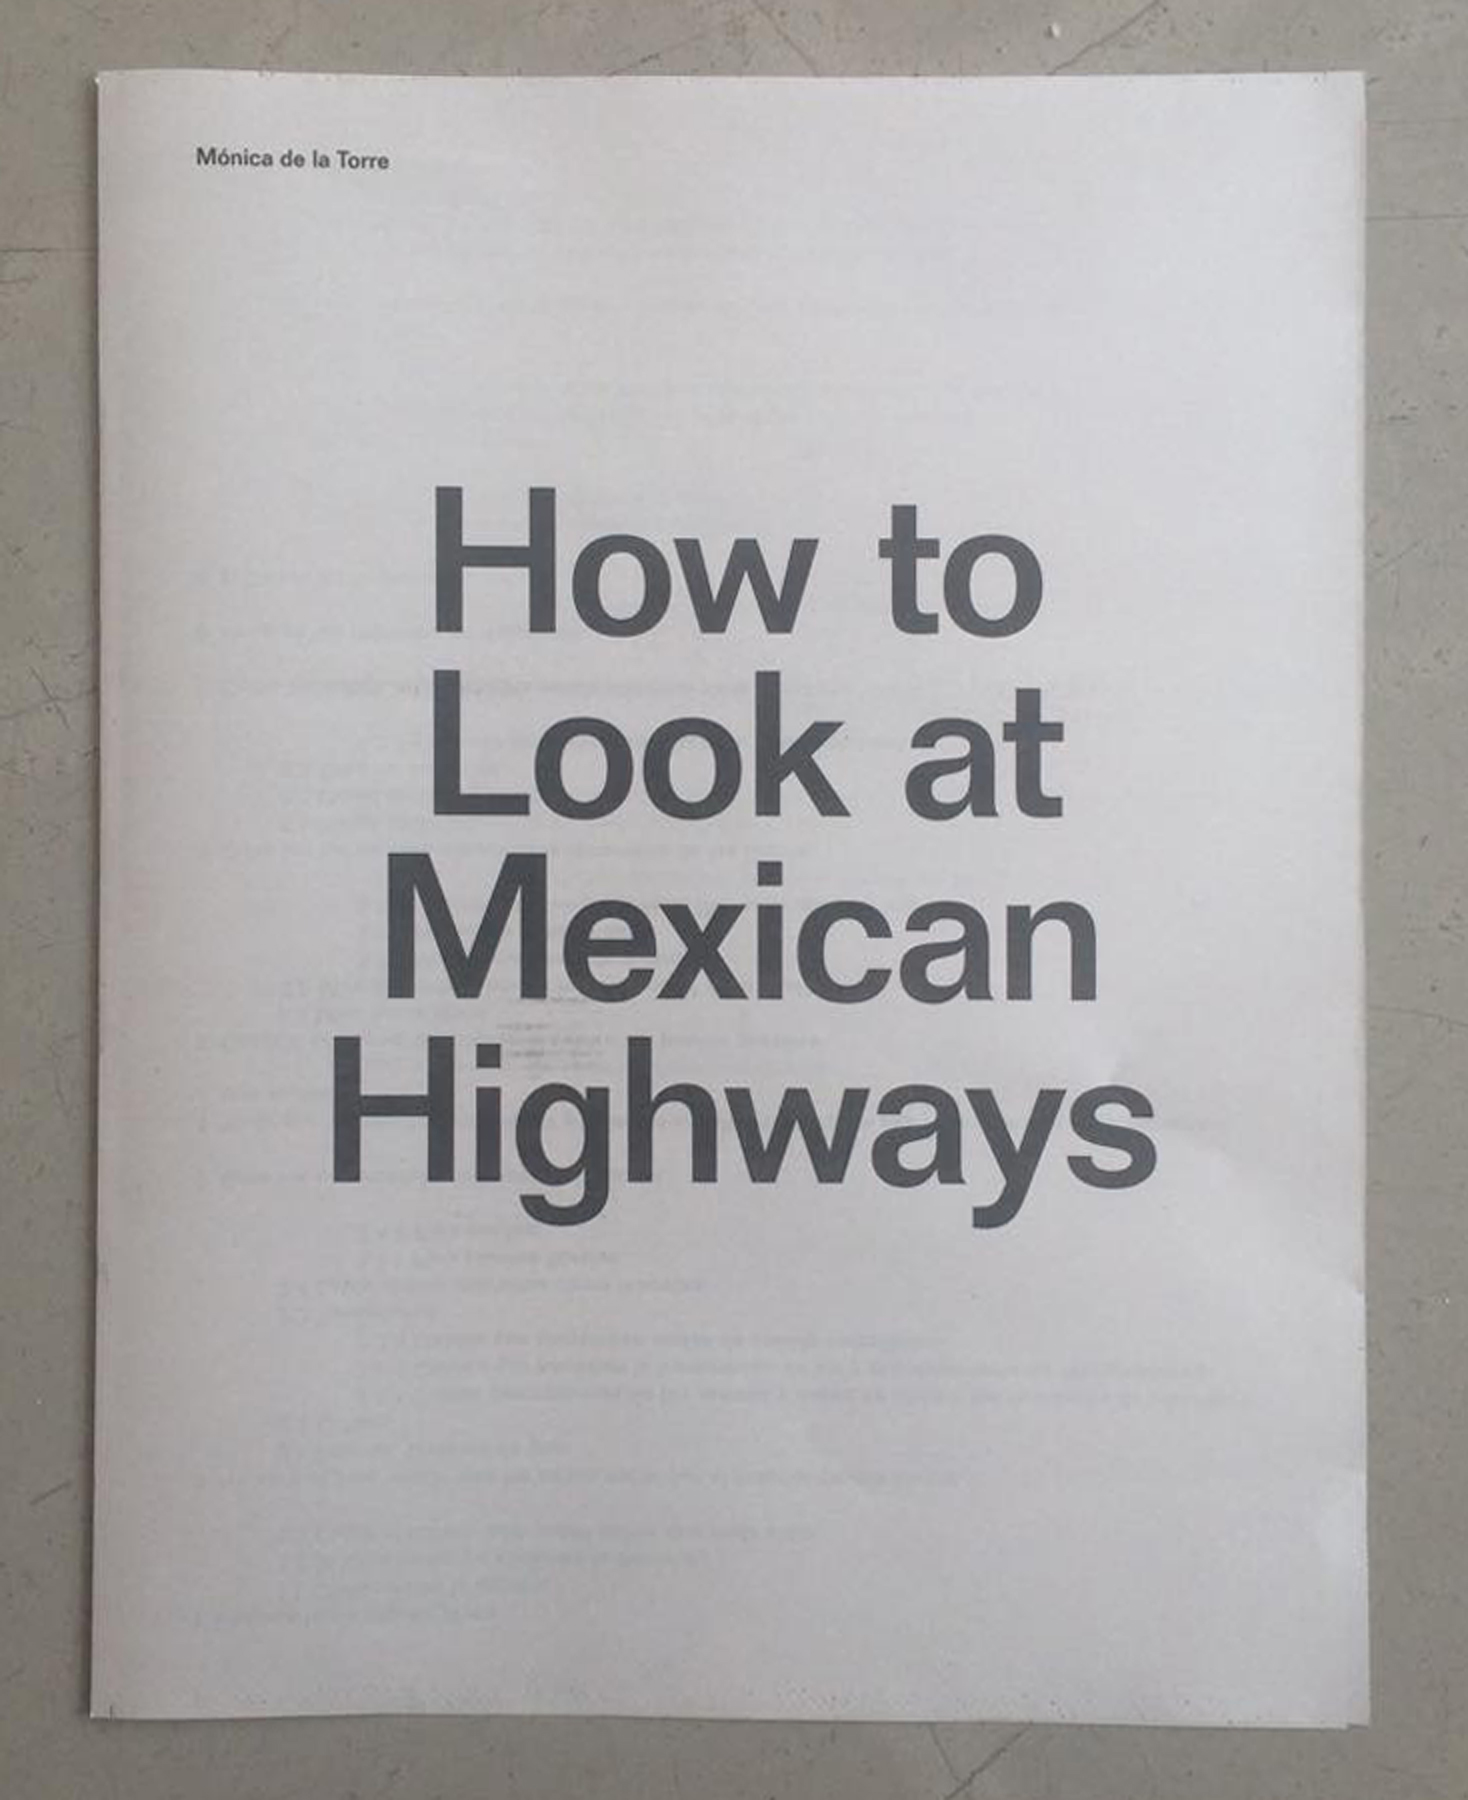 Mónica de la Torre  How to Look at Mexican Highways, 2006 poem (from the book  Talk Shows )